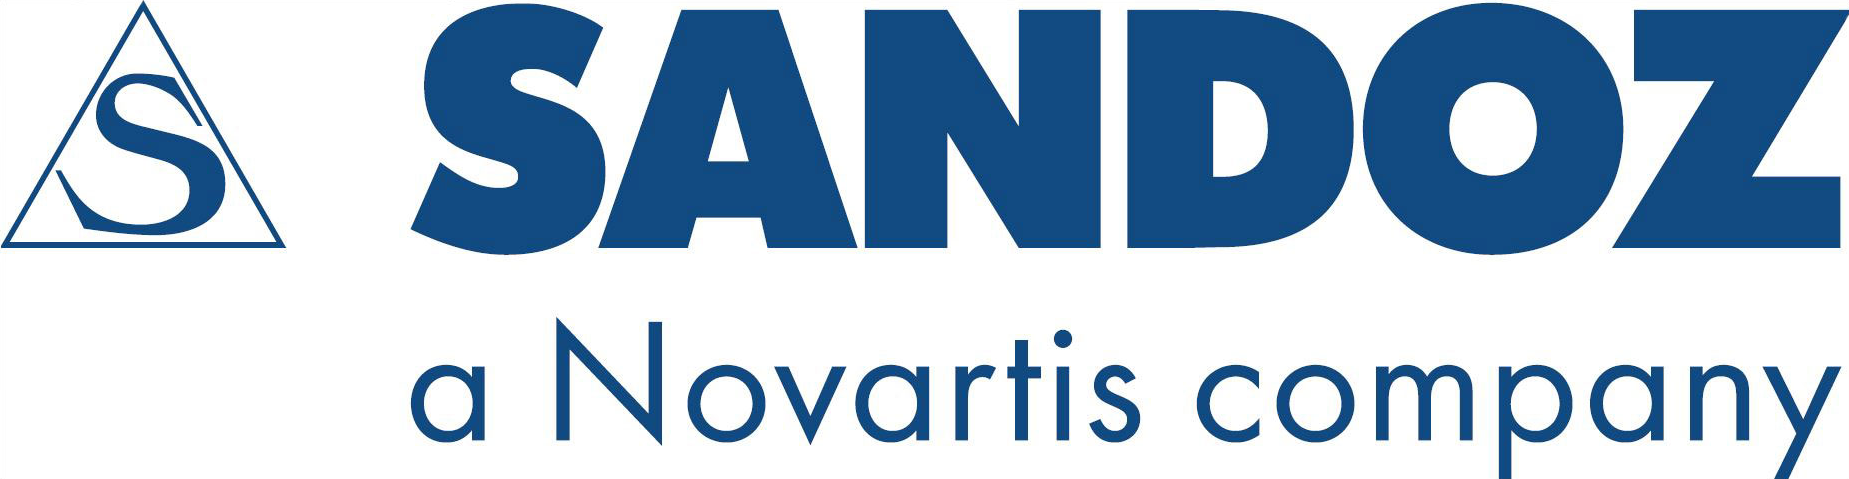 Logo of Sandoz